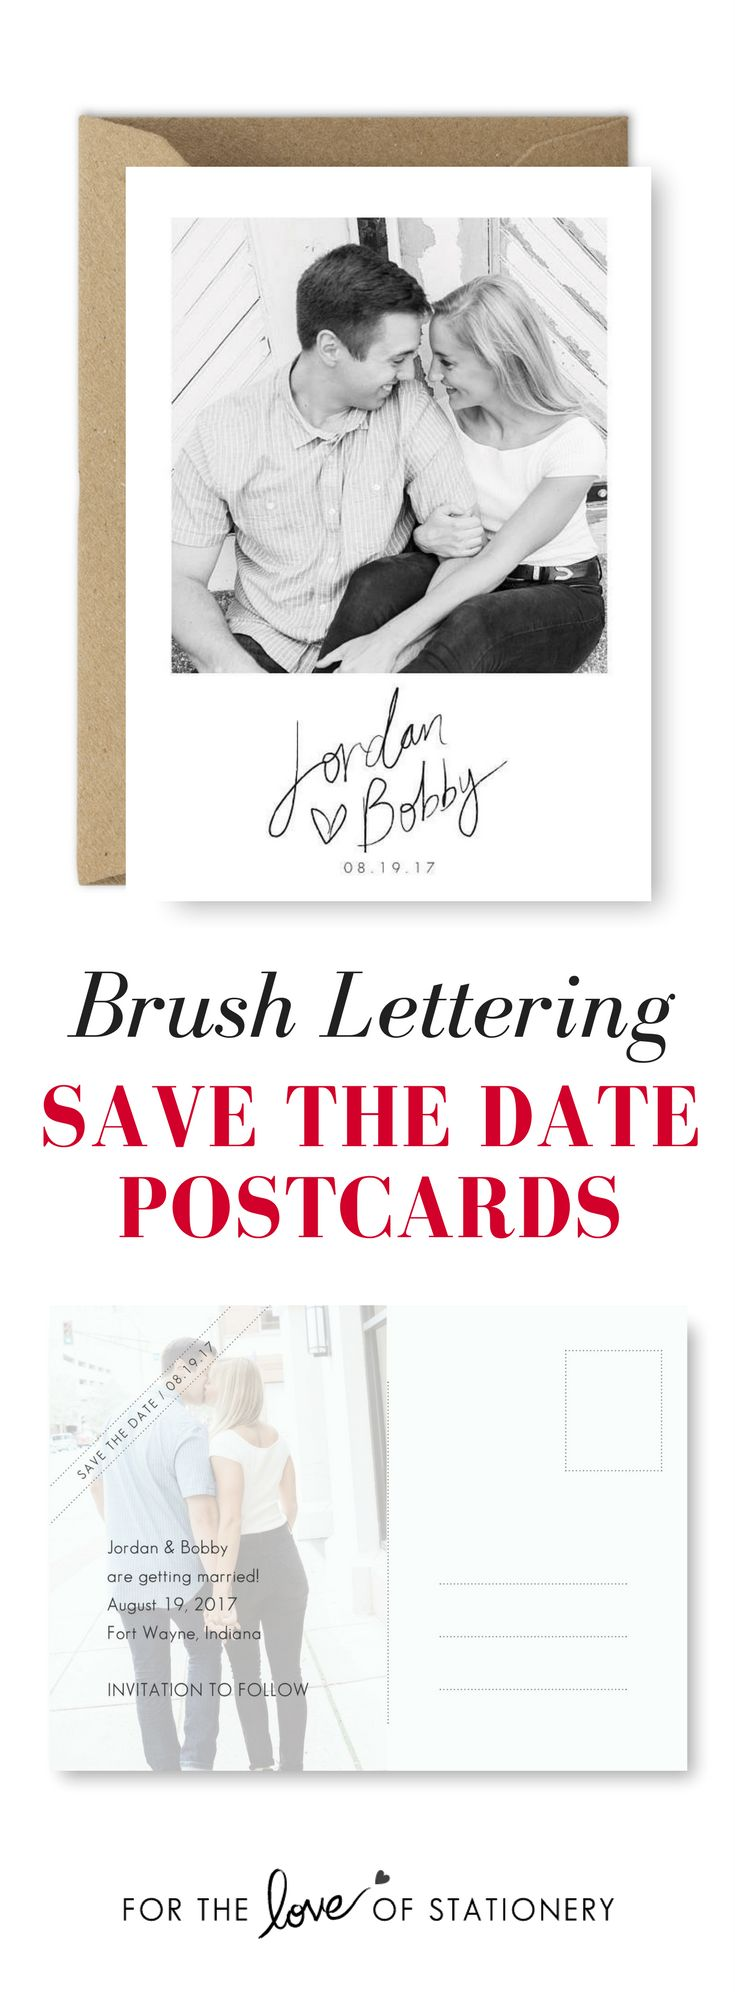 Brush Lettering Save the Date Postcards | Photo Save the Date Cards | GEM Photography | For the Love of Stationery